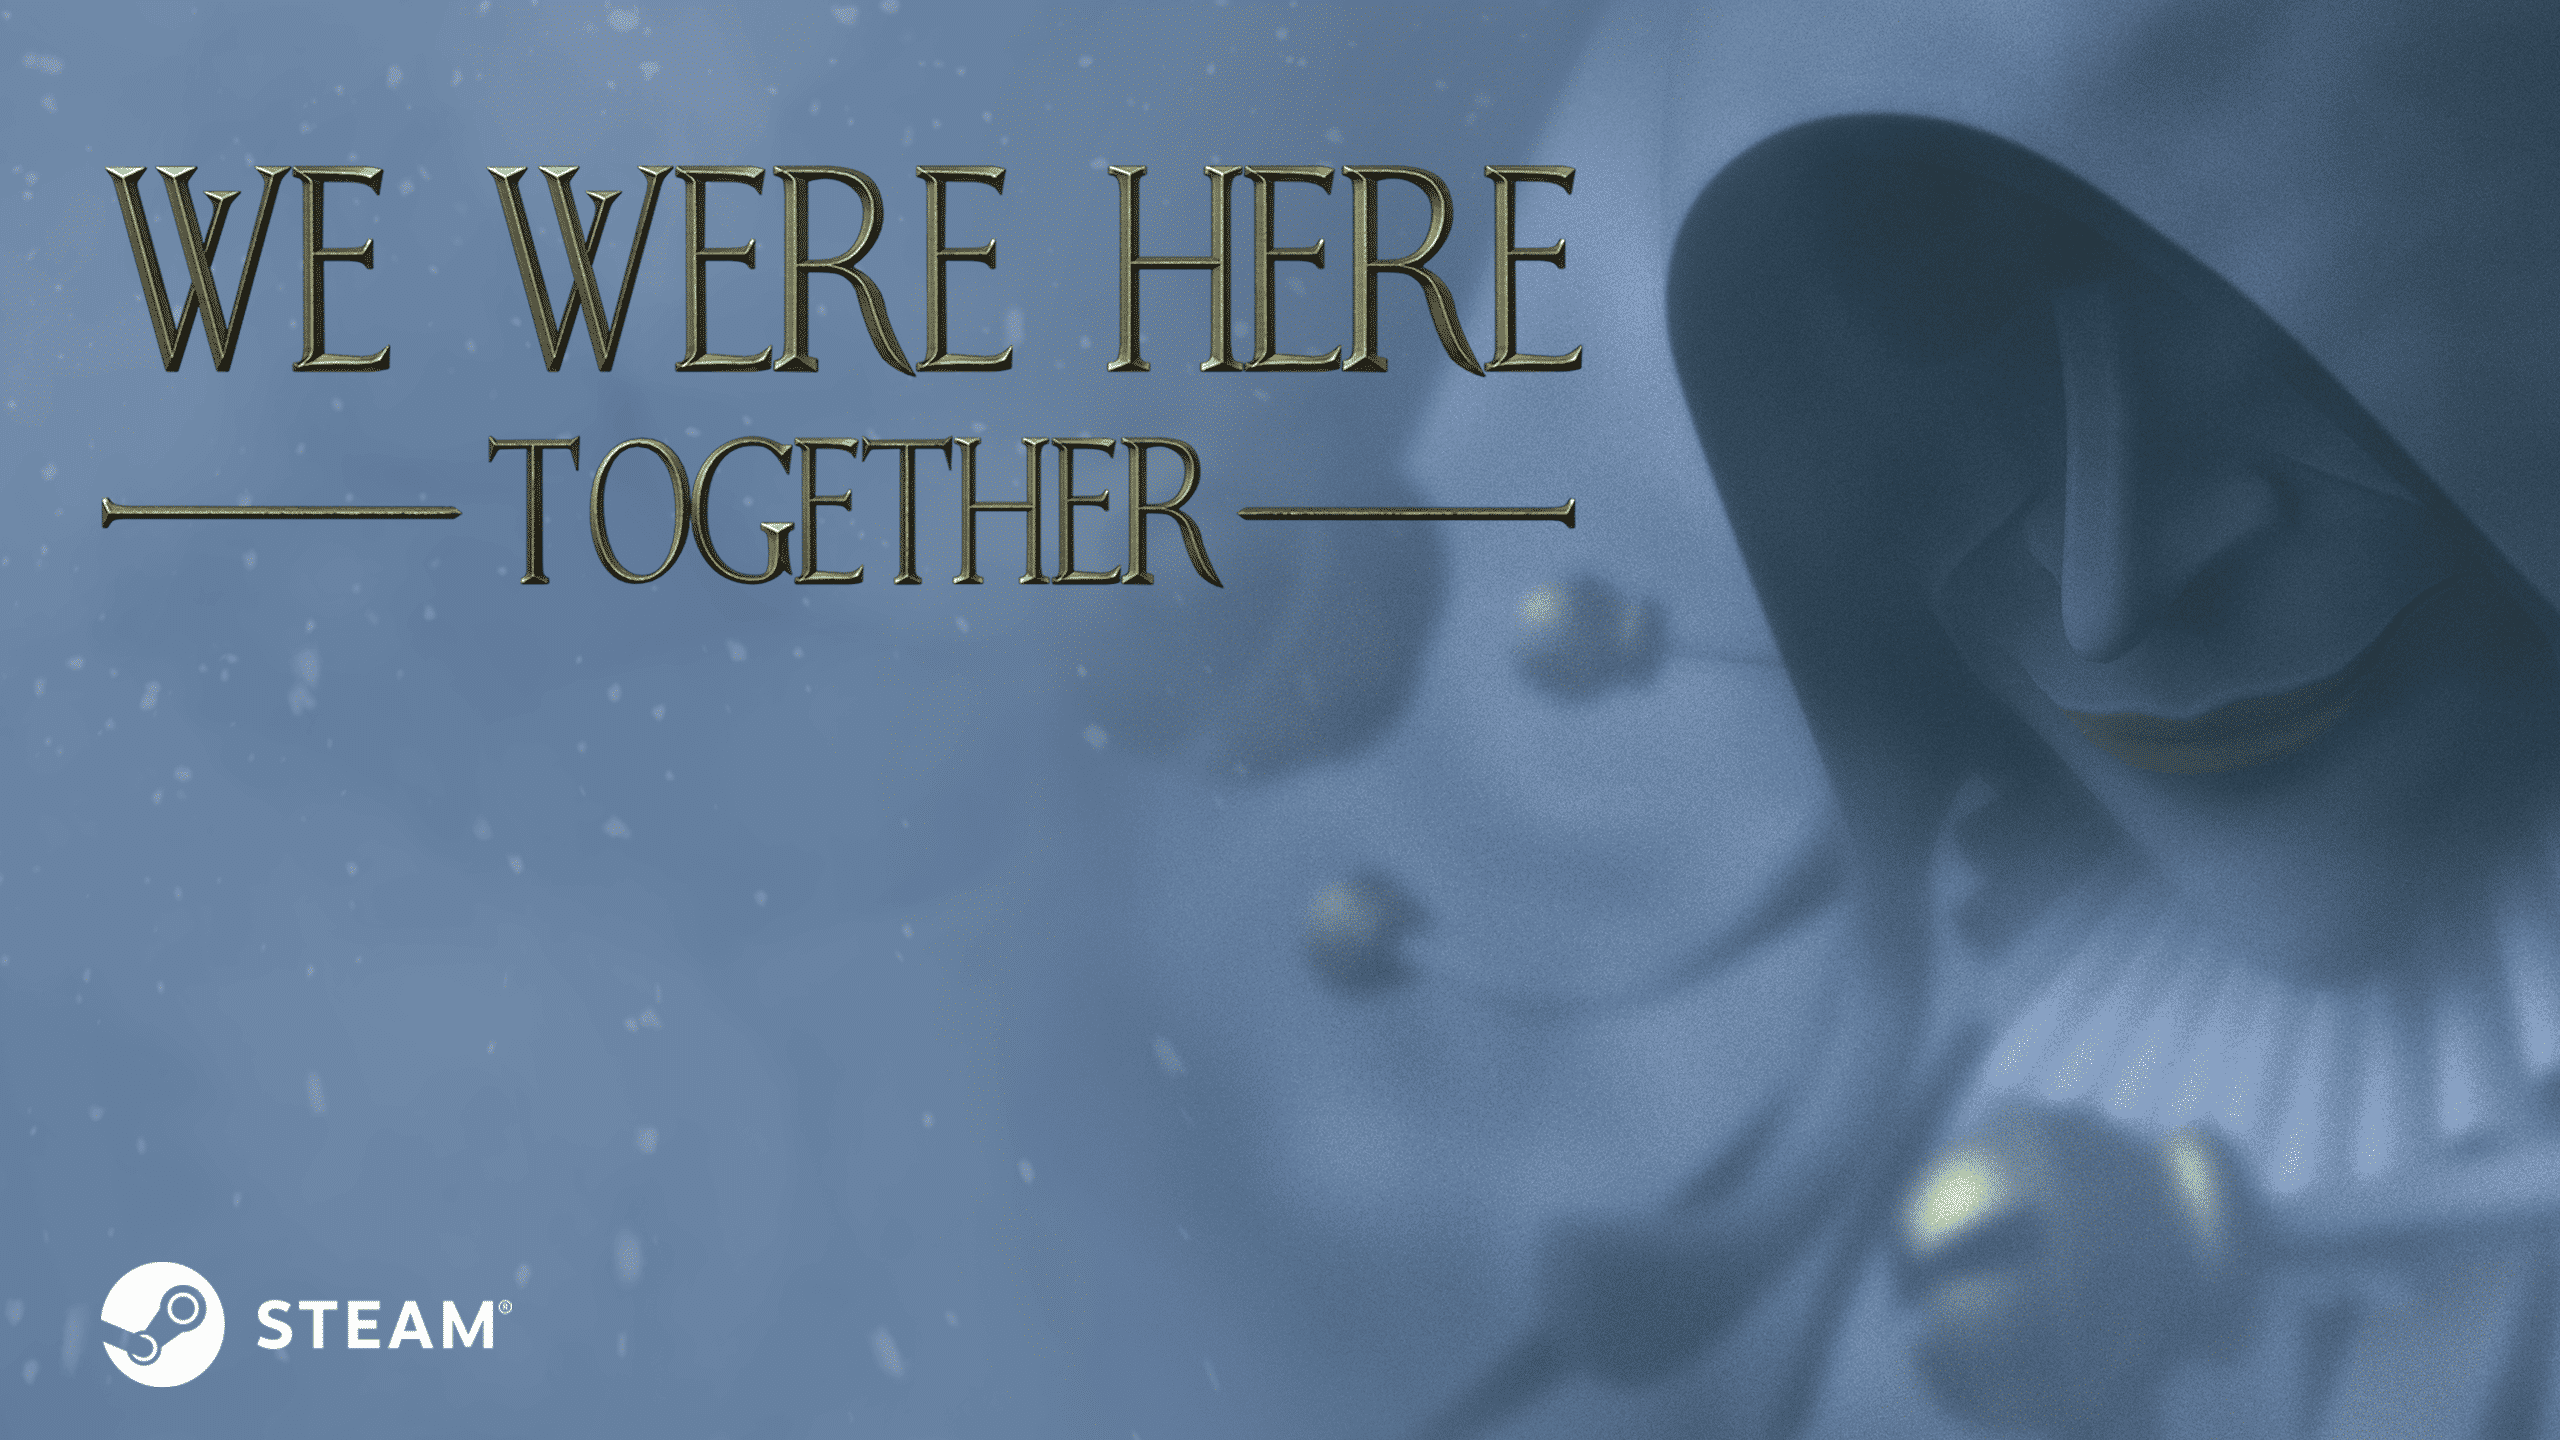 We Were Here Together devs support plan